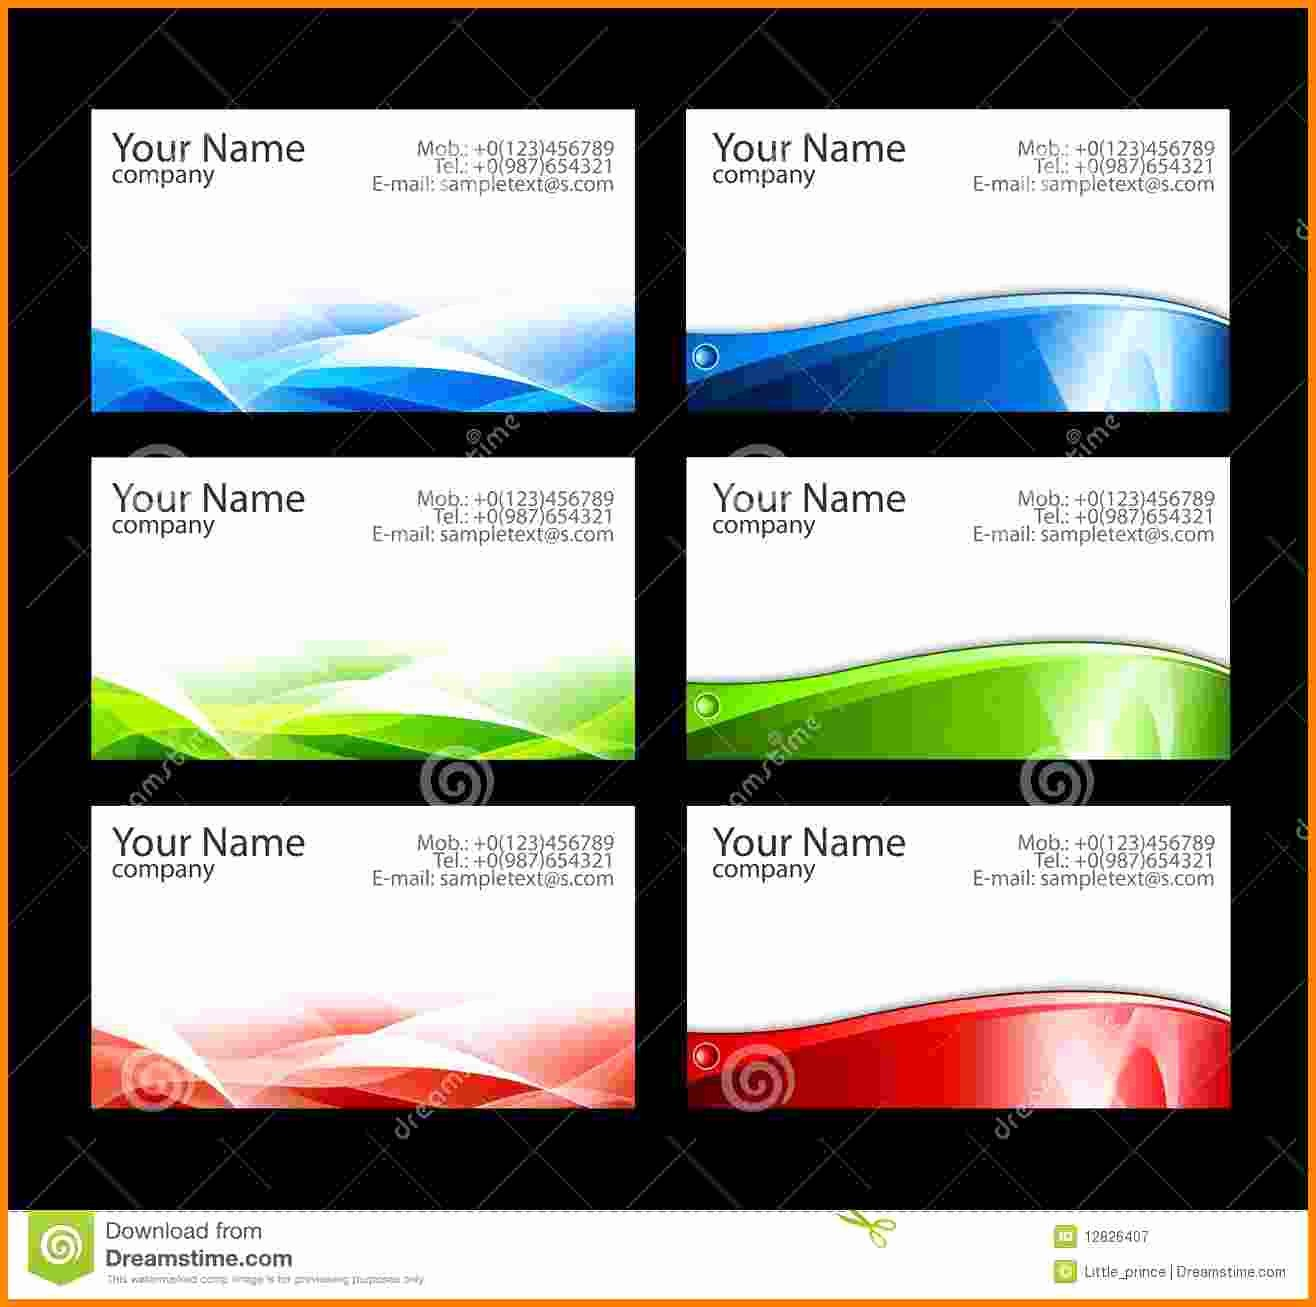 Business Card Template In Word Awesome 9 Blank Business Card Template Illustrator